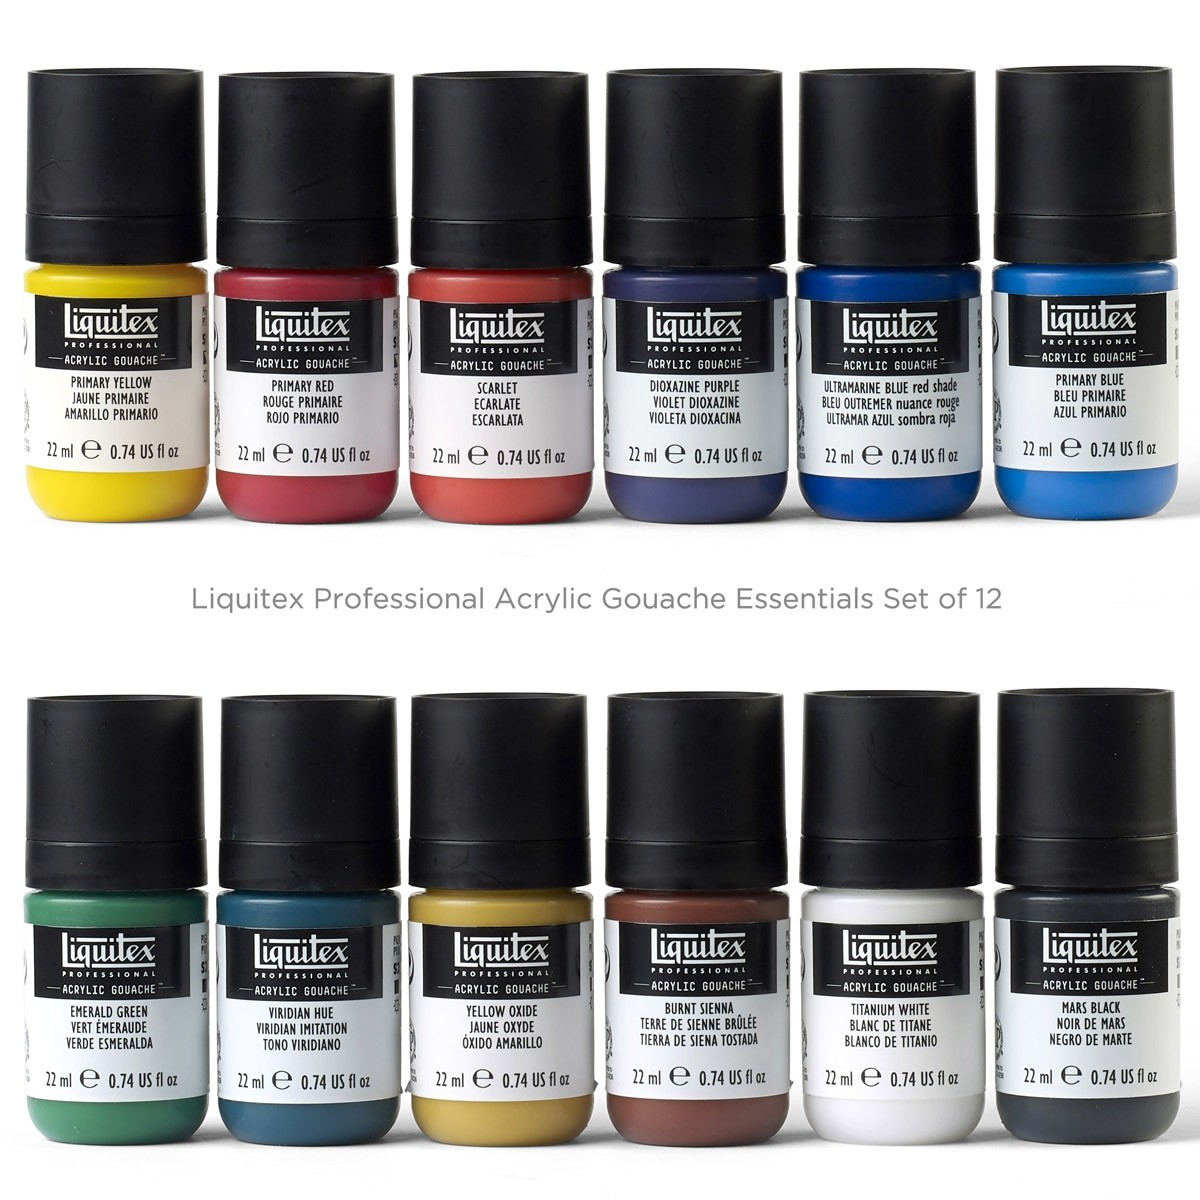 Liquitex Professional Acrylic Gouache Essentials Set